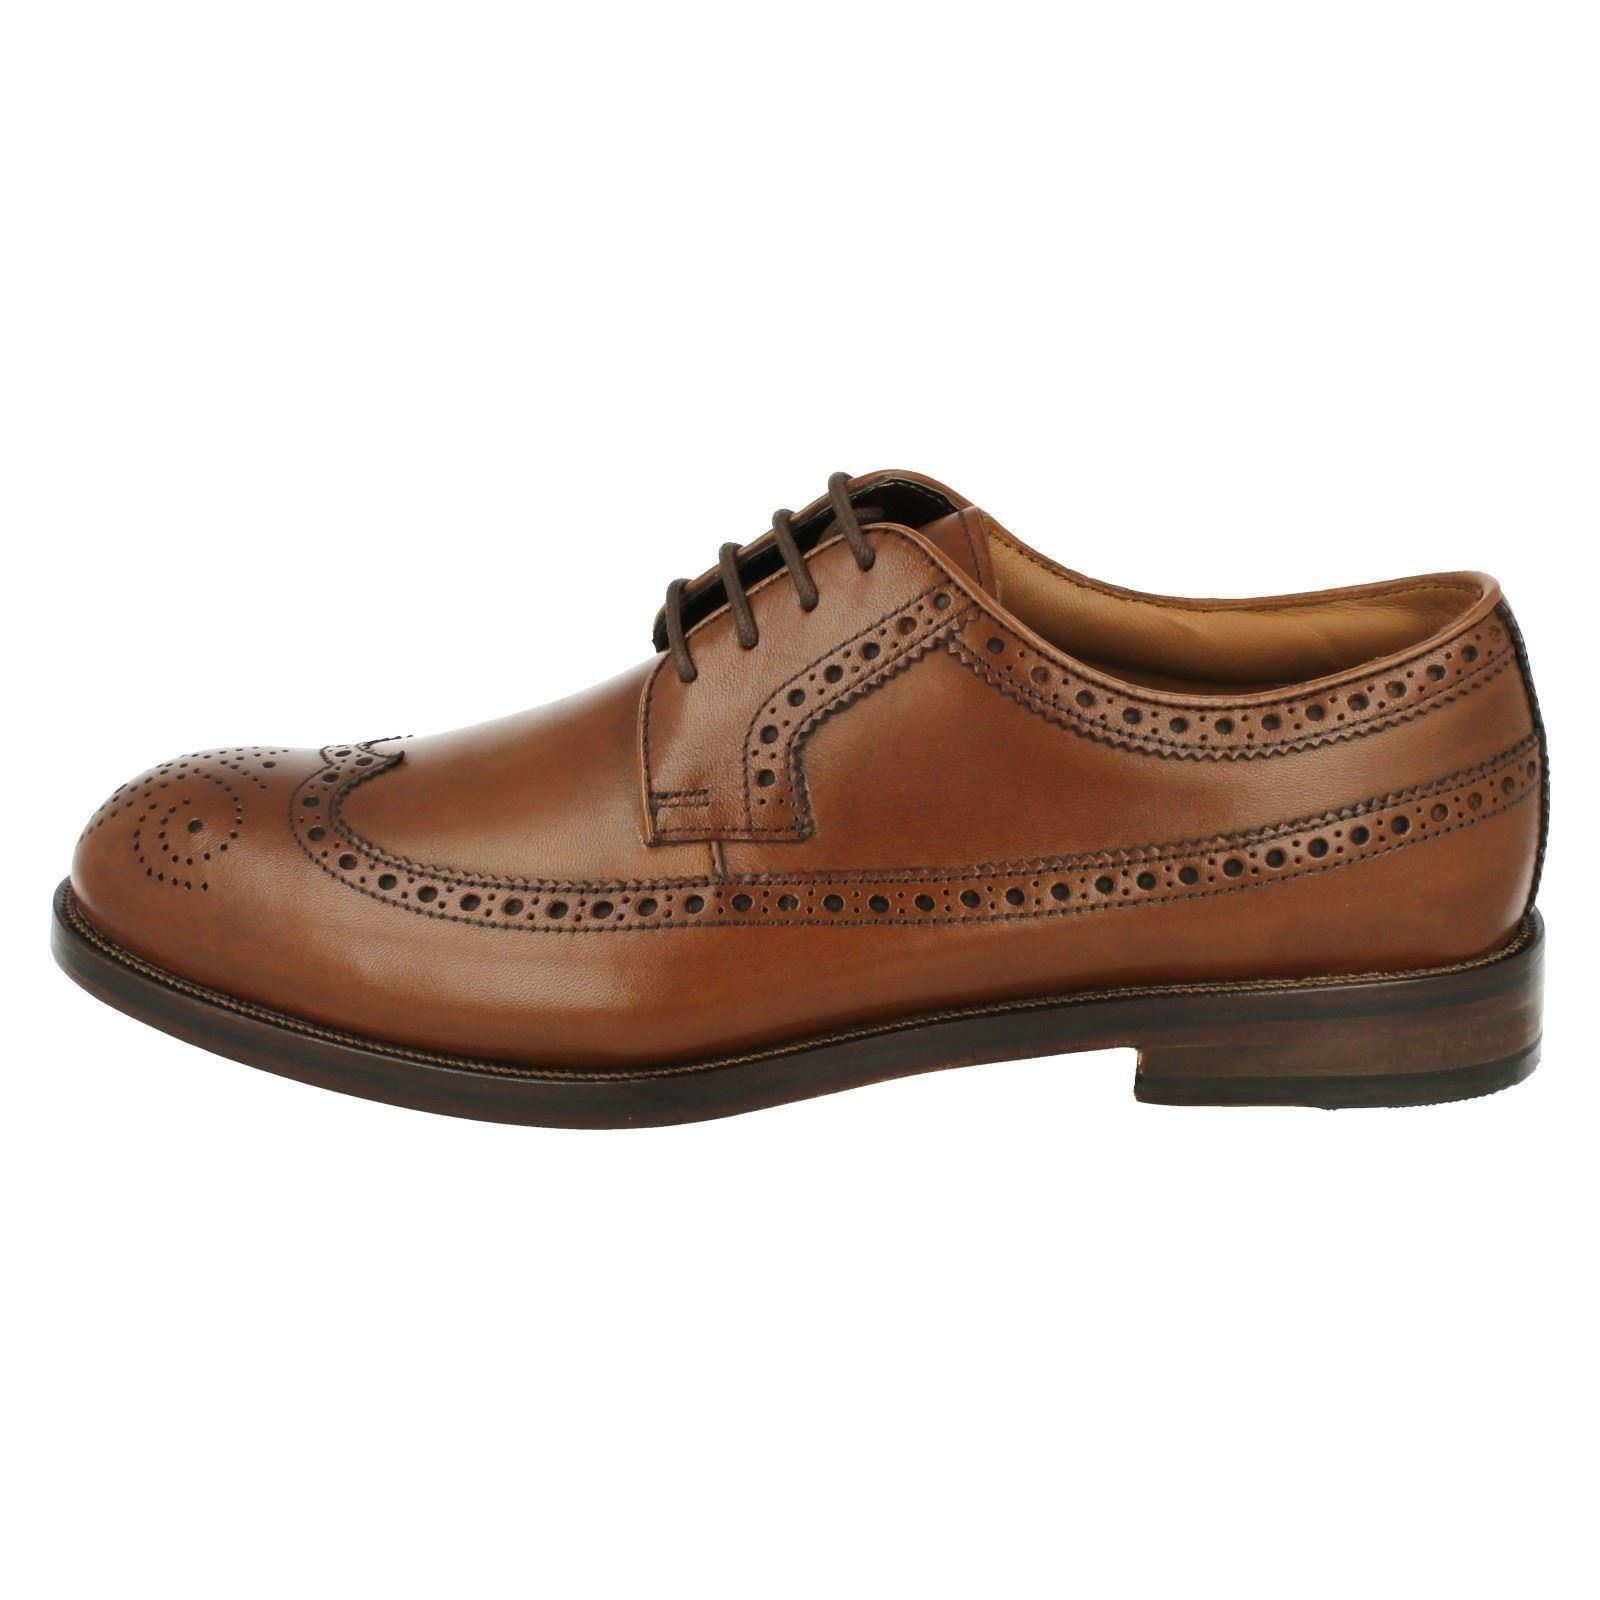 cb7fc8541c Mens Clarks Formal Brogue Style Lace up Shoes Coling Limit UK 9 Tan ...